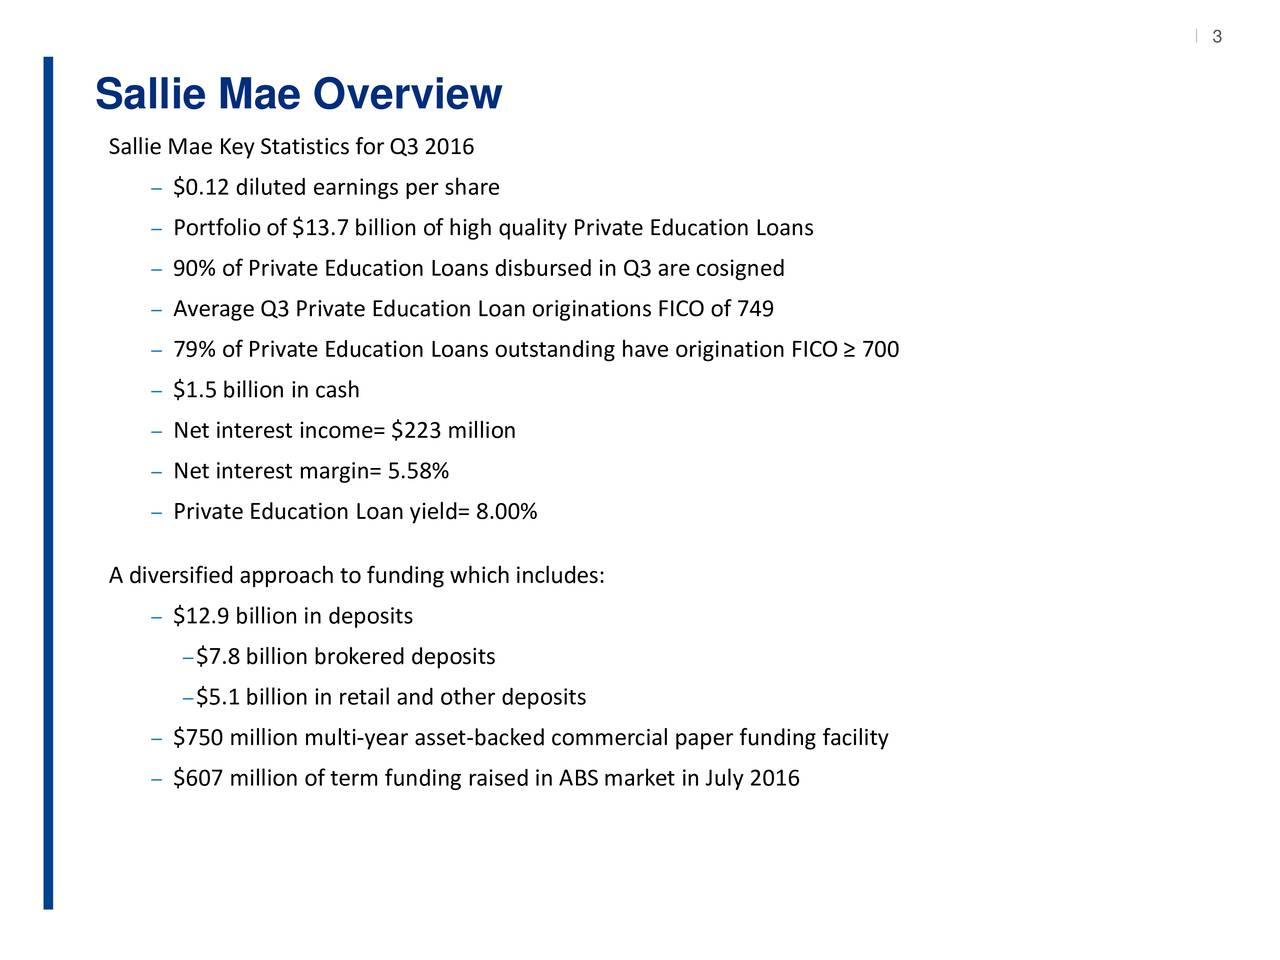 Sallie Mae Overview Sallie Mae Key Statistics for Q3 2016 $0.12 diluted earnings per share Portfolio of $13.7 billion of high quality Private Education Loans 90% of Private Education Loans disbursed in Q3 are cosigned Average Q3 Private Education Loan originations FICO of 749 79% of Private Education Loans outstanding have origination FICO  700 $1.5 billion in cash Net interest income= $223 million Net interest margin= 5.58% Private Education Loan yield= 8.00% A diversified approach to funding which includes: $12.9 billion in deposits $7.8 billion brokered deposits $5.1 billion in retail and other deposits $750 million multi-year asset-backed commercial paper funding facility $607 million of term funding raised in ABS market in July 2016